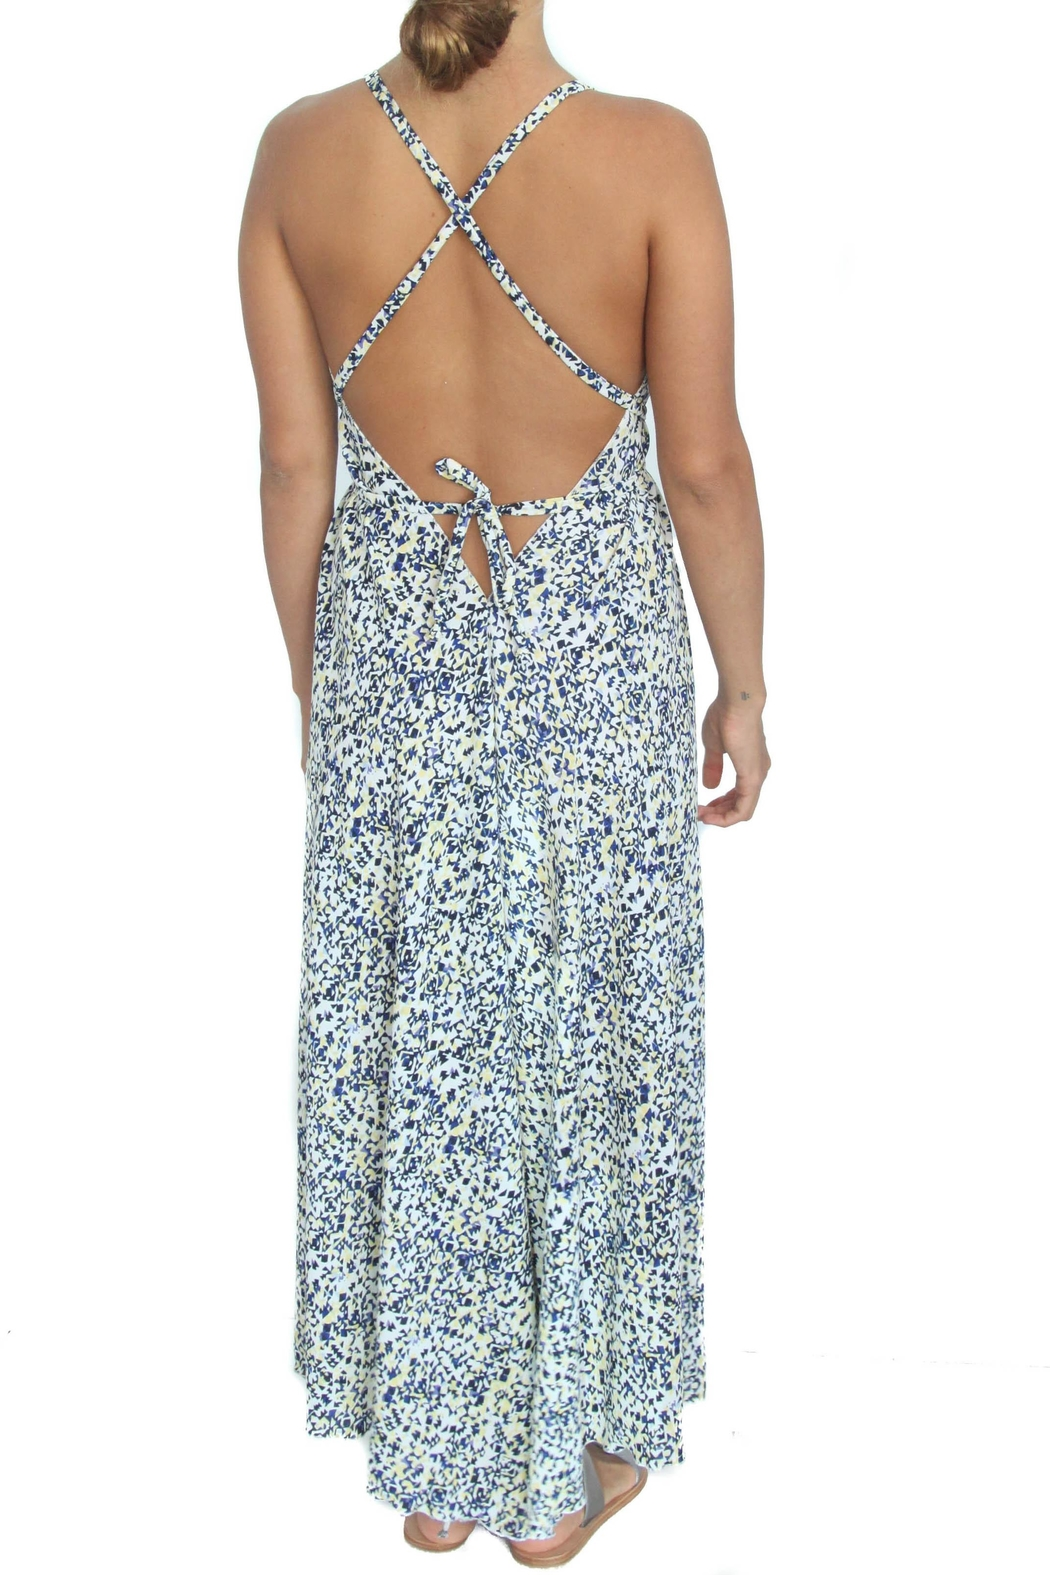 LOVEleigh Lemon Noosa Dress - Front Full Image